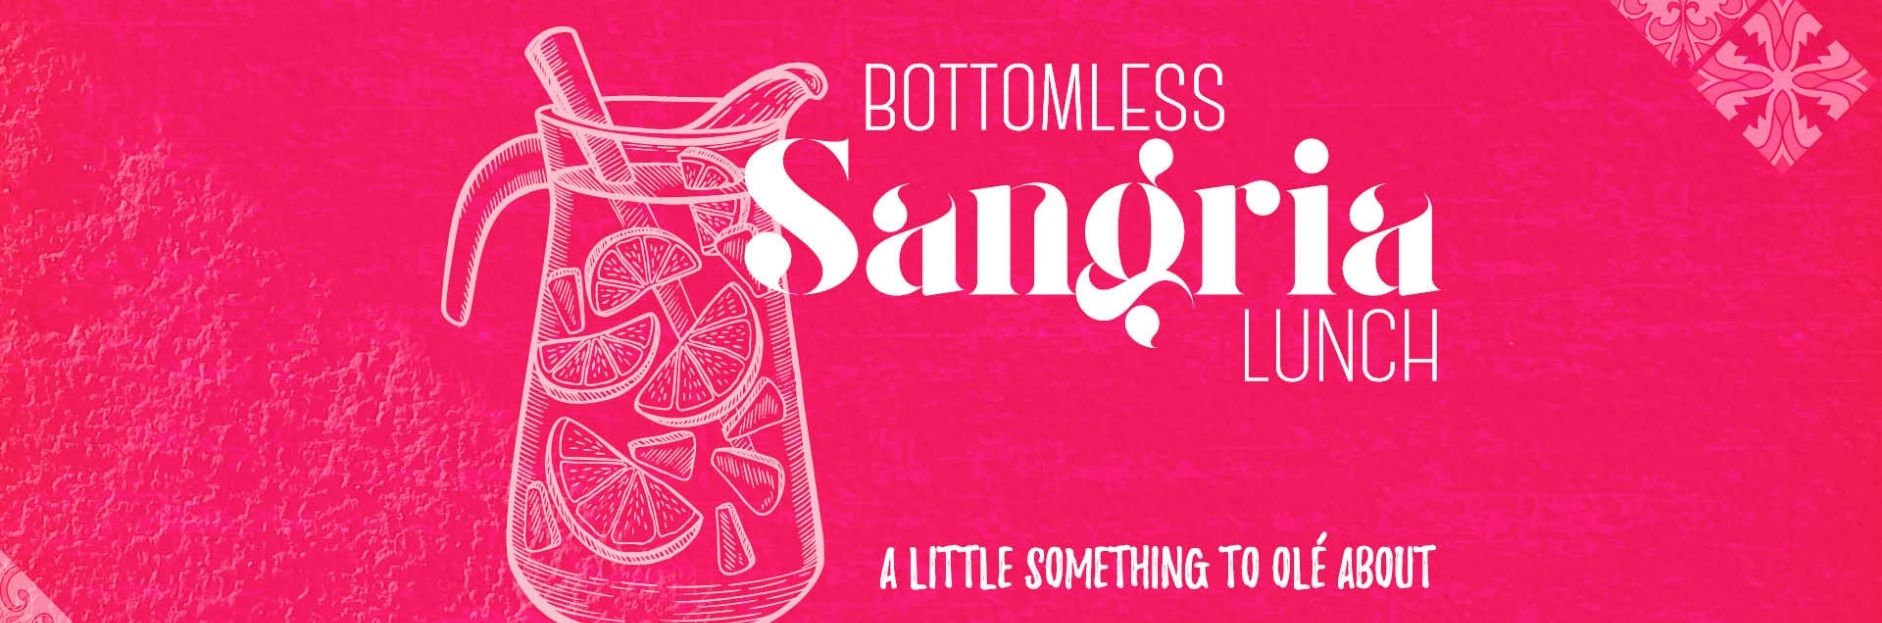 Bottomless Sangria Lunch_Heno_and_Rey_we